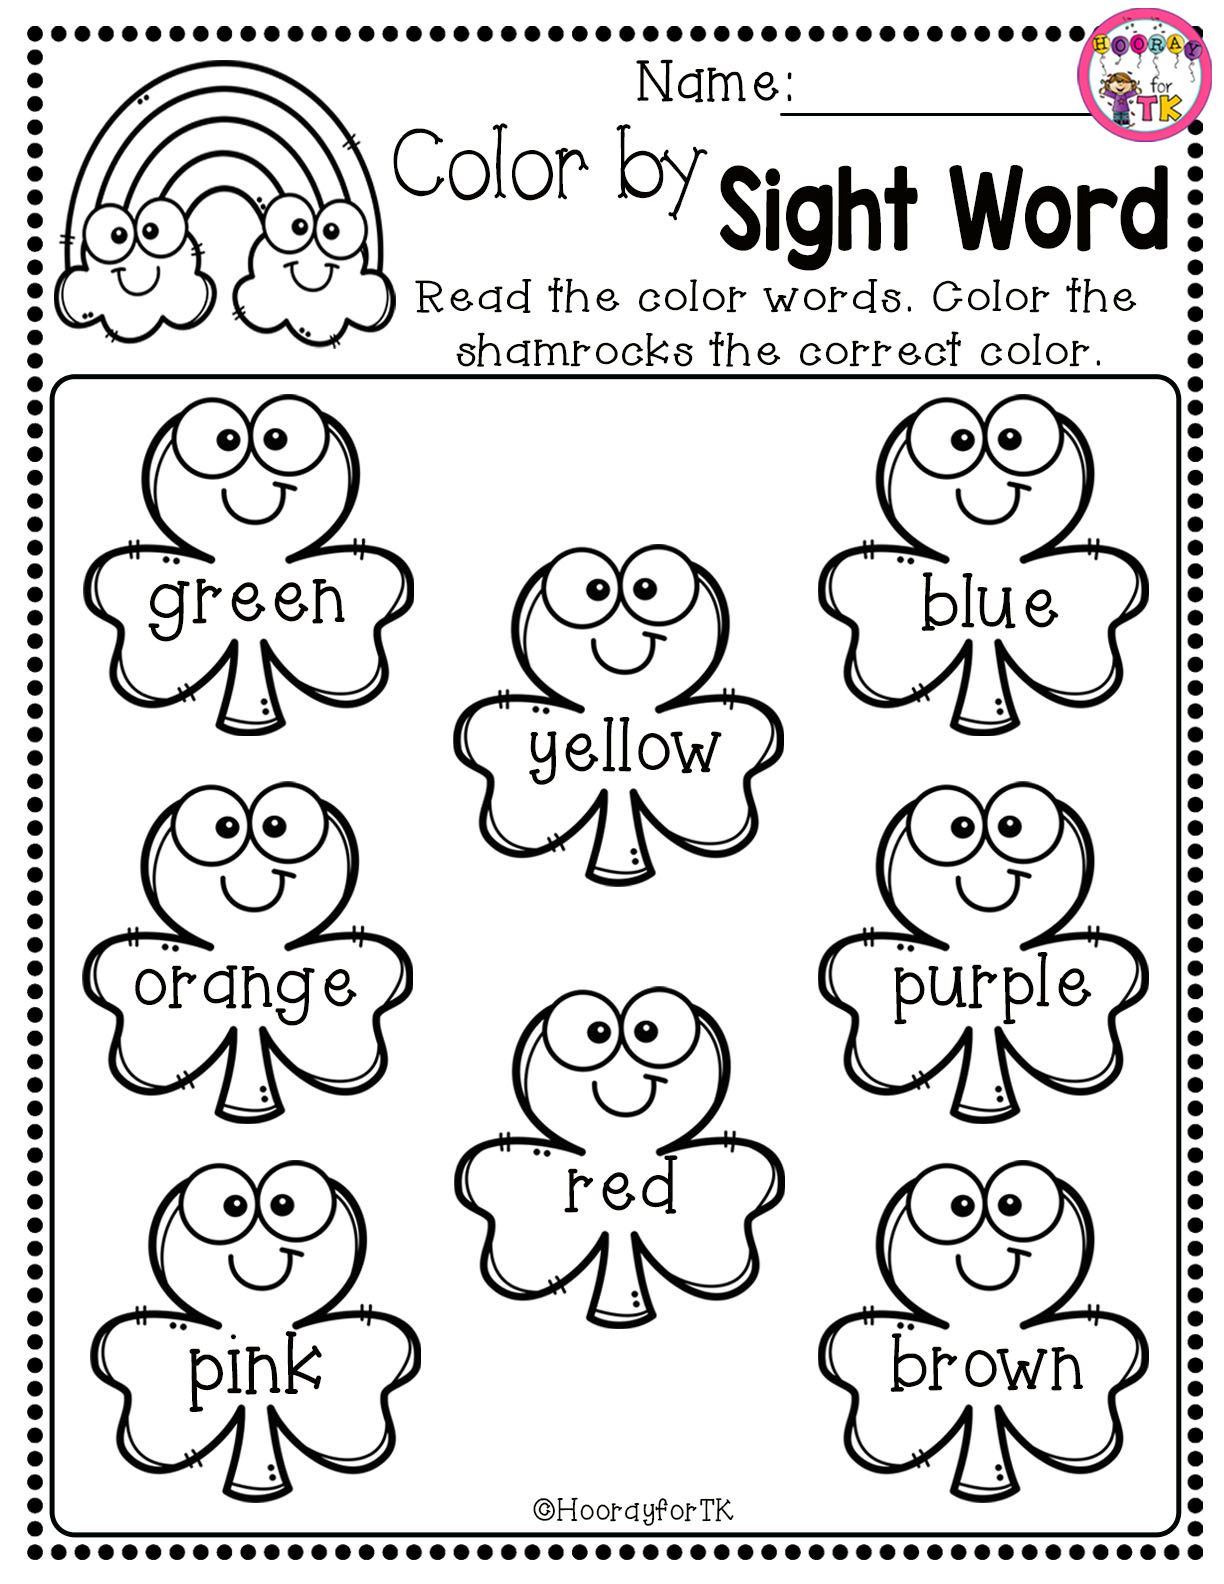 March And St Patrick S Day Worksheet Kindergarten Addition Worksheets Kindergarten Colors Kindergarten Curriculum [ 1584 x 1224 Pixel ]